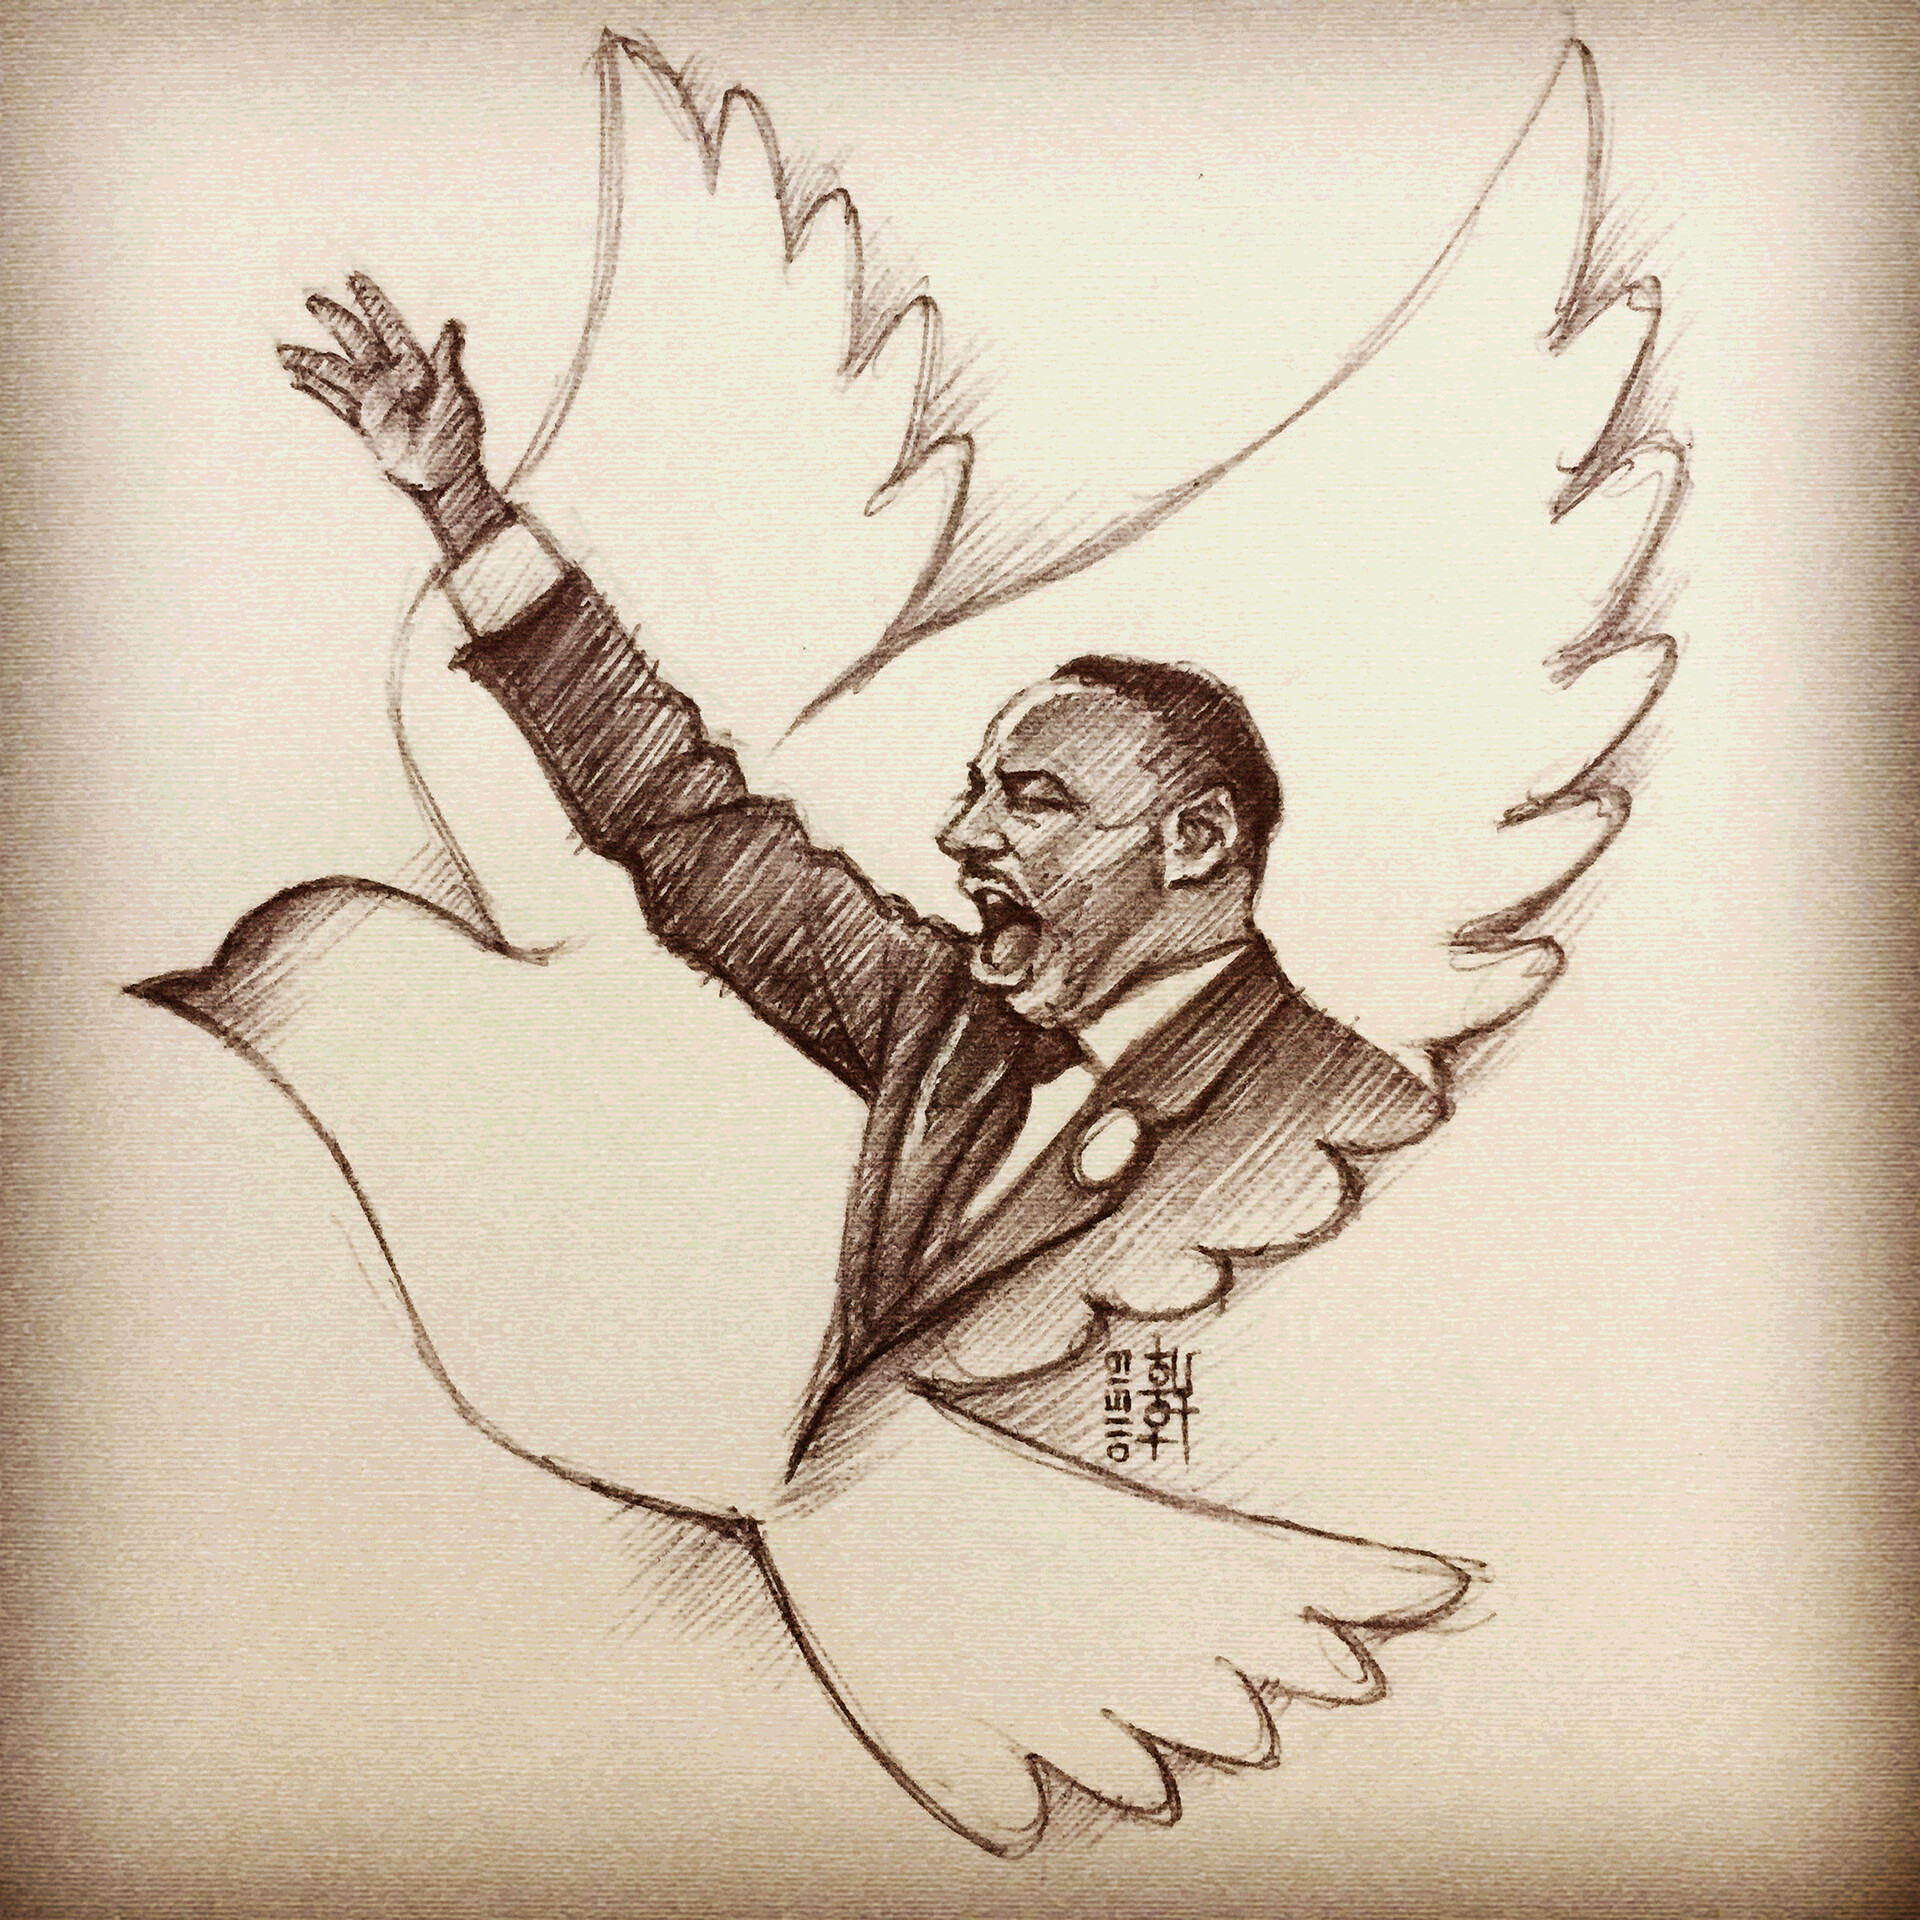 I Have a Dream - Sketch